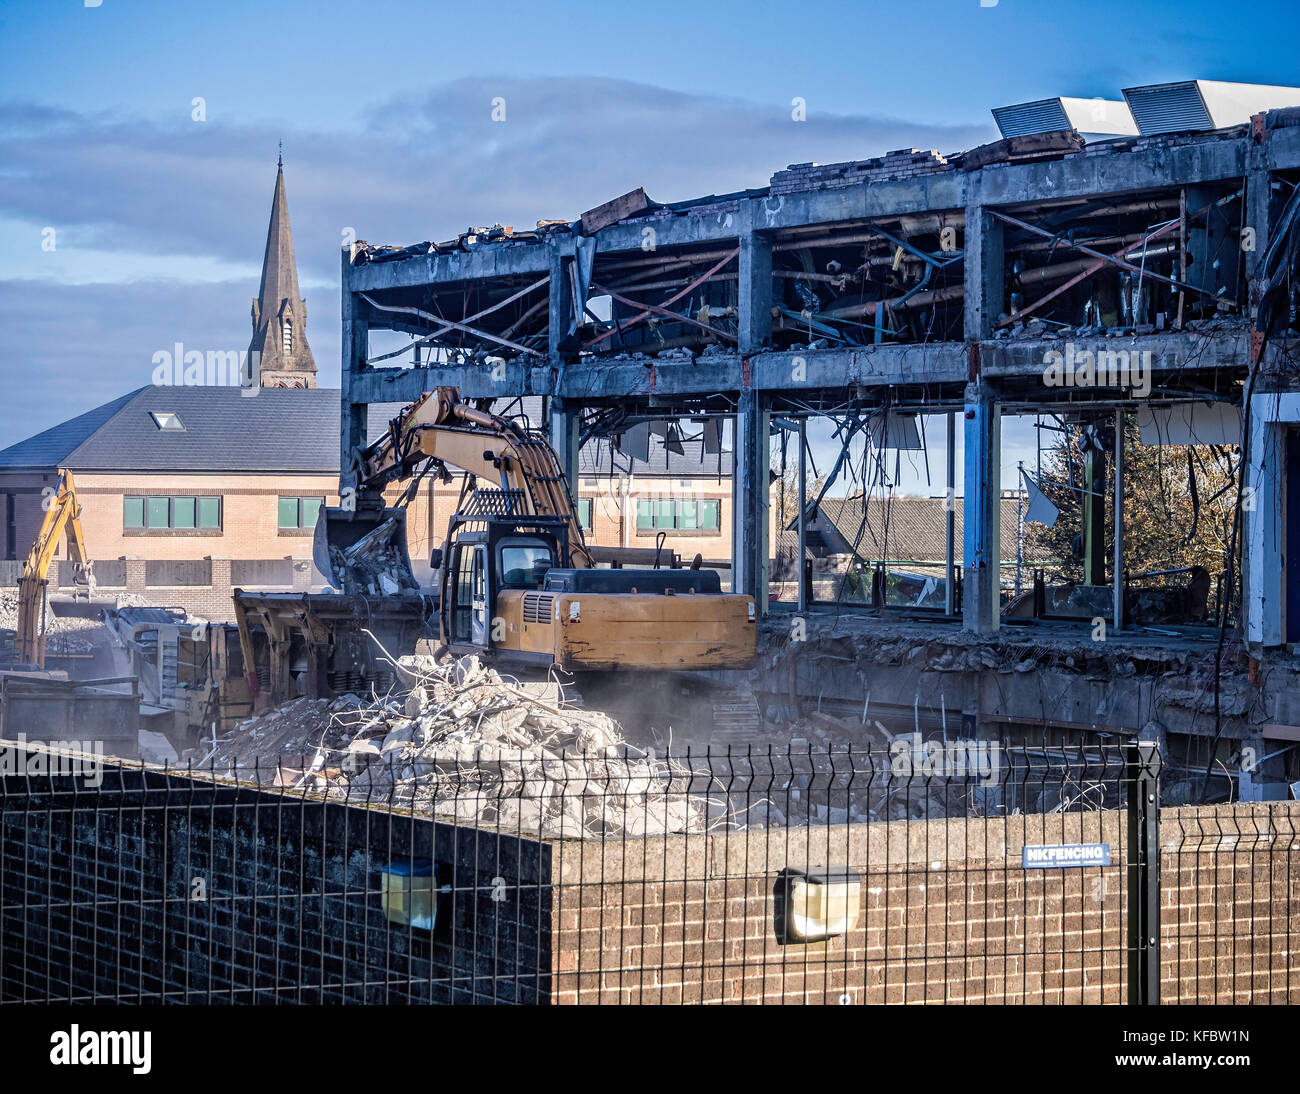 Bangor, County Down, Northern Ireland, UK 27th October 2017 Old sports complex being demolished Demolition contractors - Stock Image